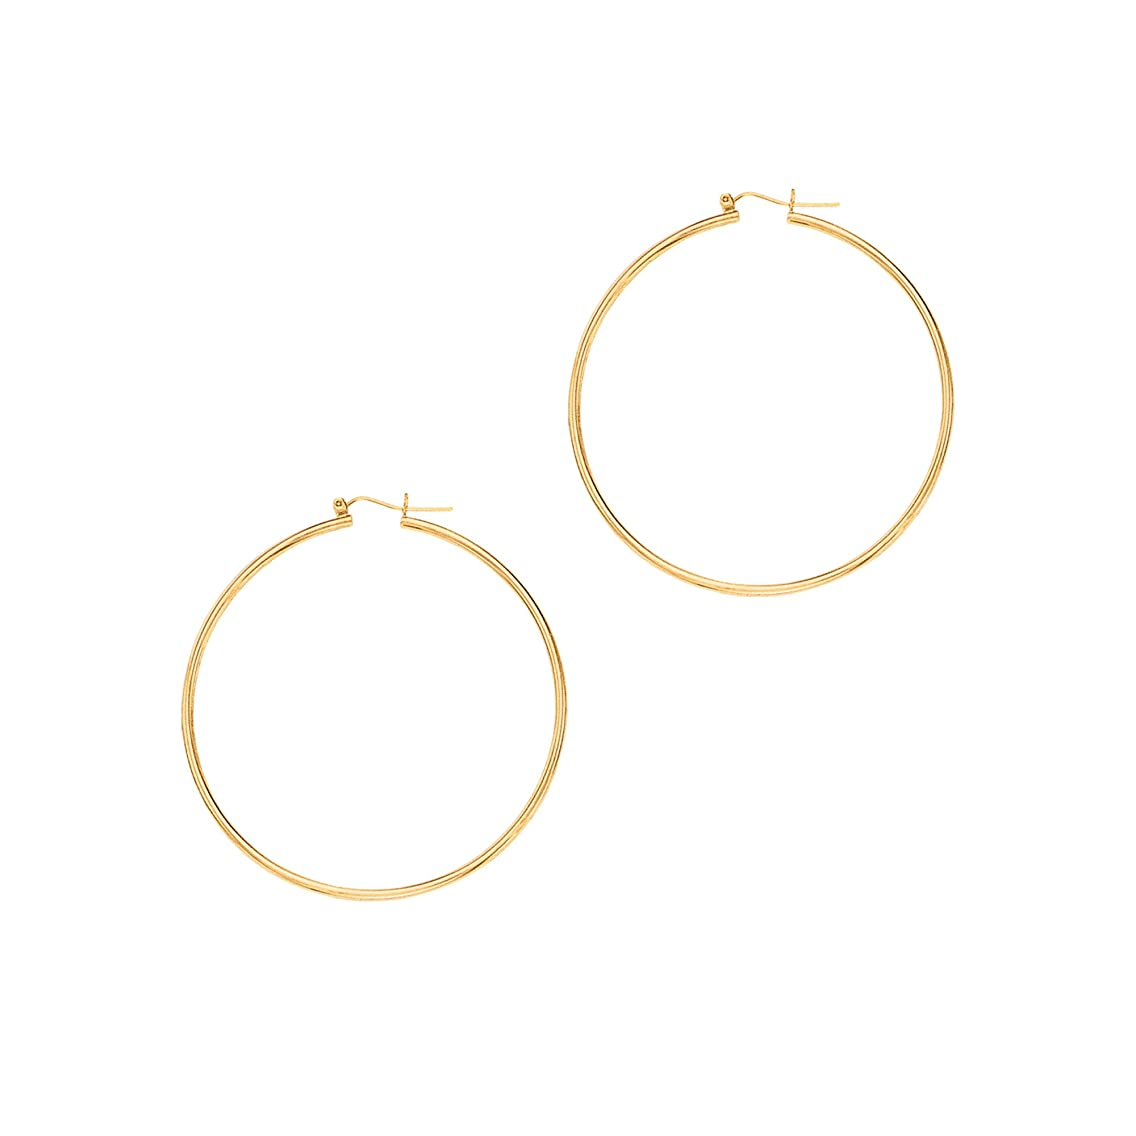 IcedTime Aleksa Ladies 14K White or Yellow Gold Polished Classic Hinched 1.5mm Tube Hoop Earrings 25-45mm